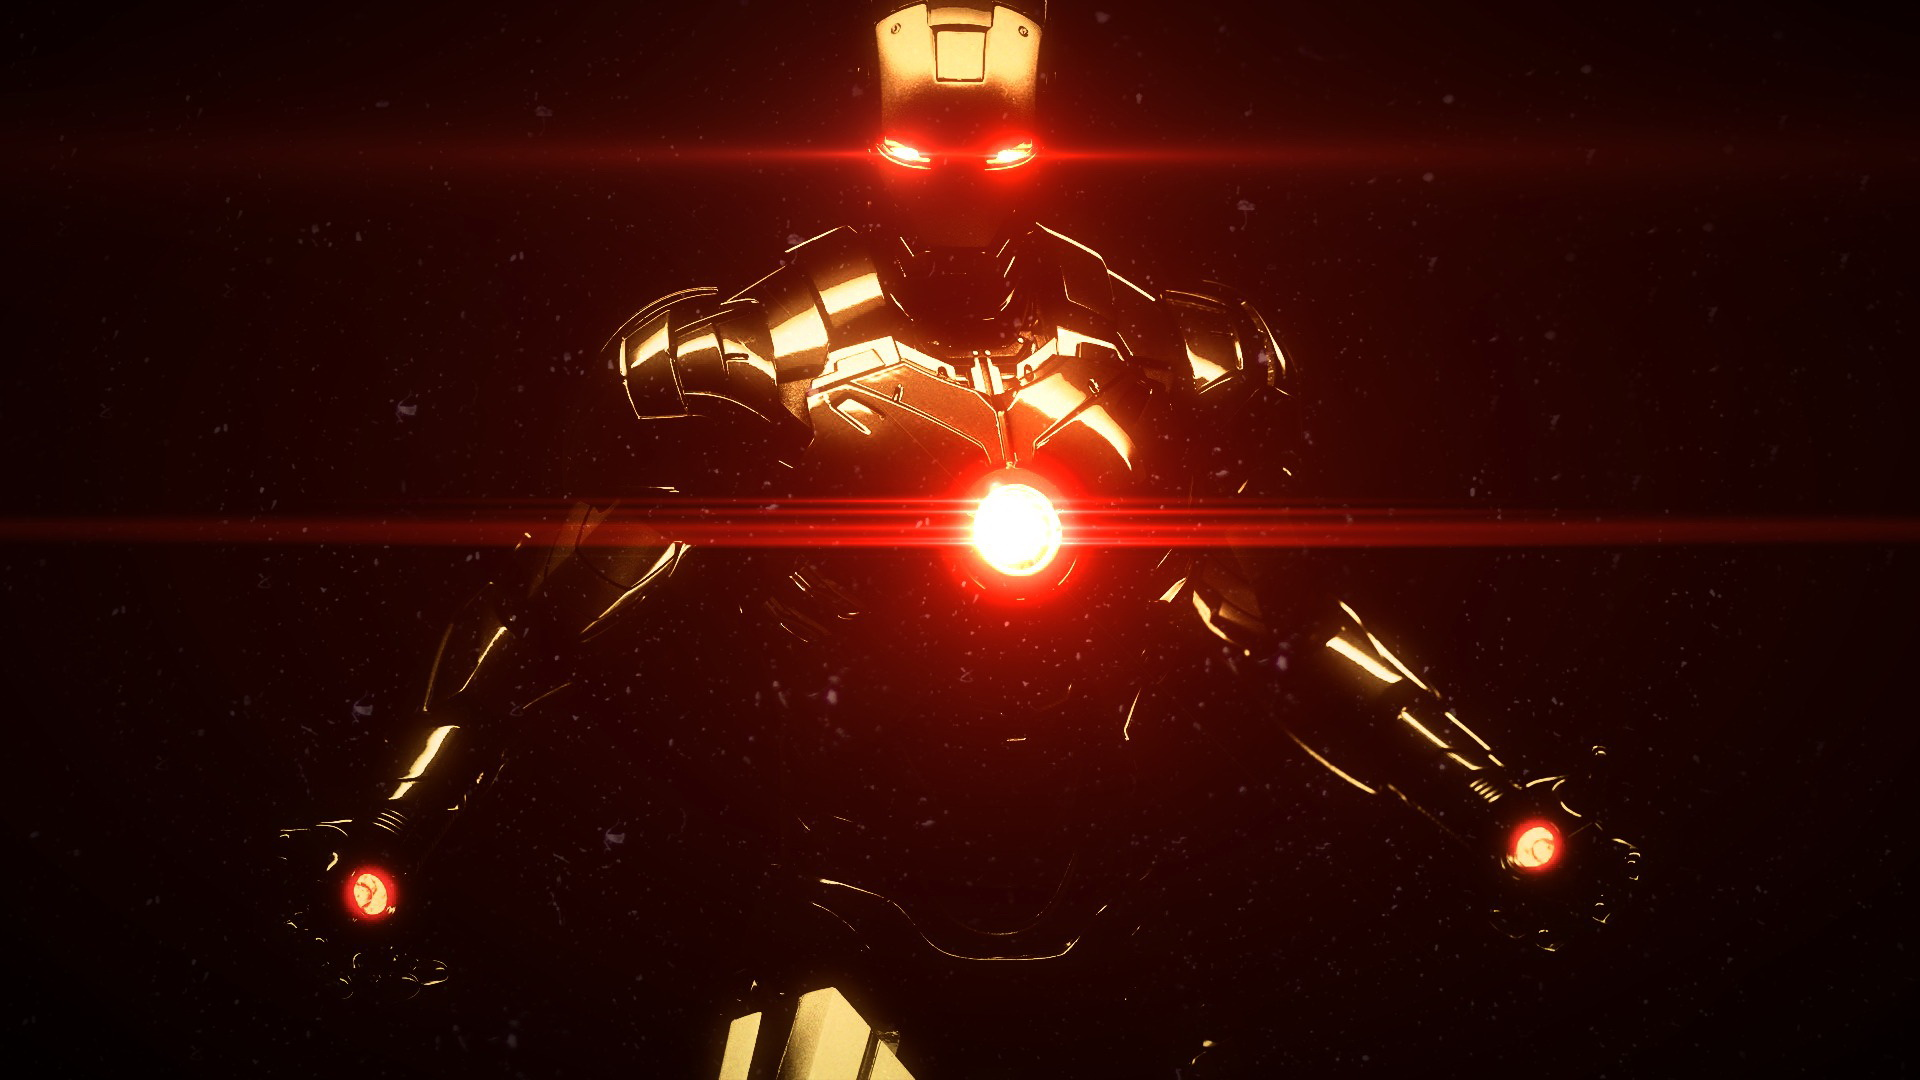 Iron man full hd wallpaper and background 1920x1080 id for Wallpaper hd home movie